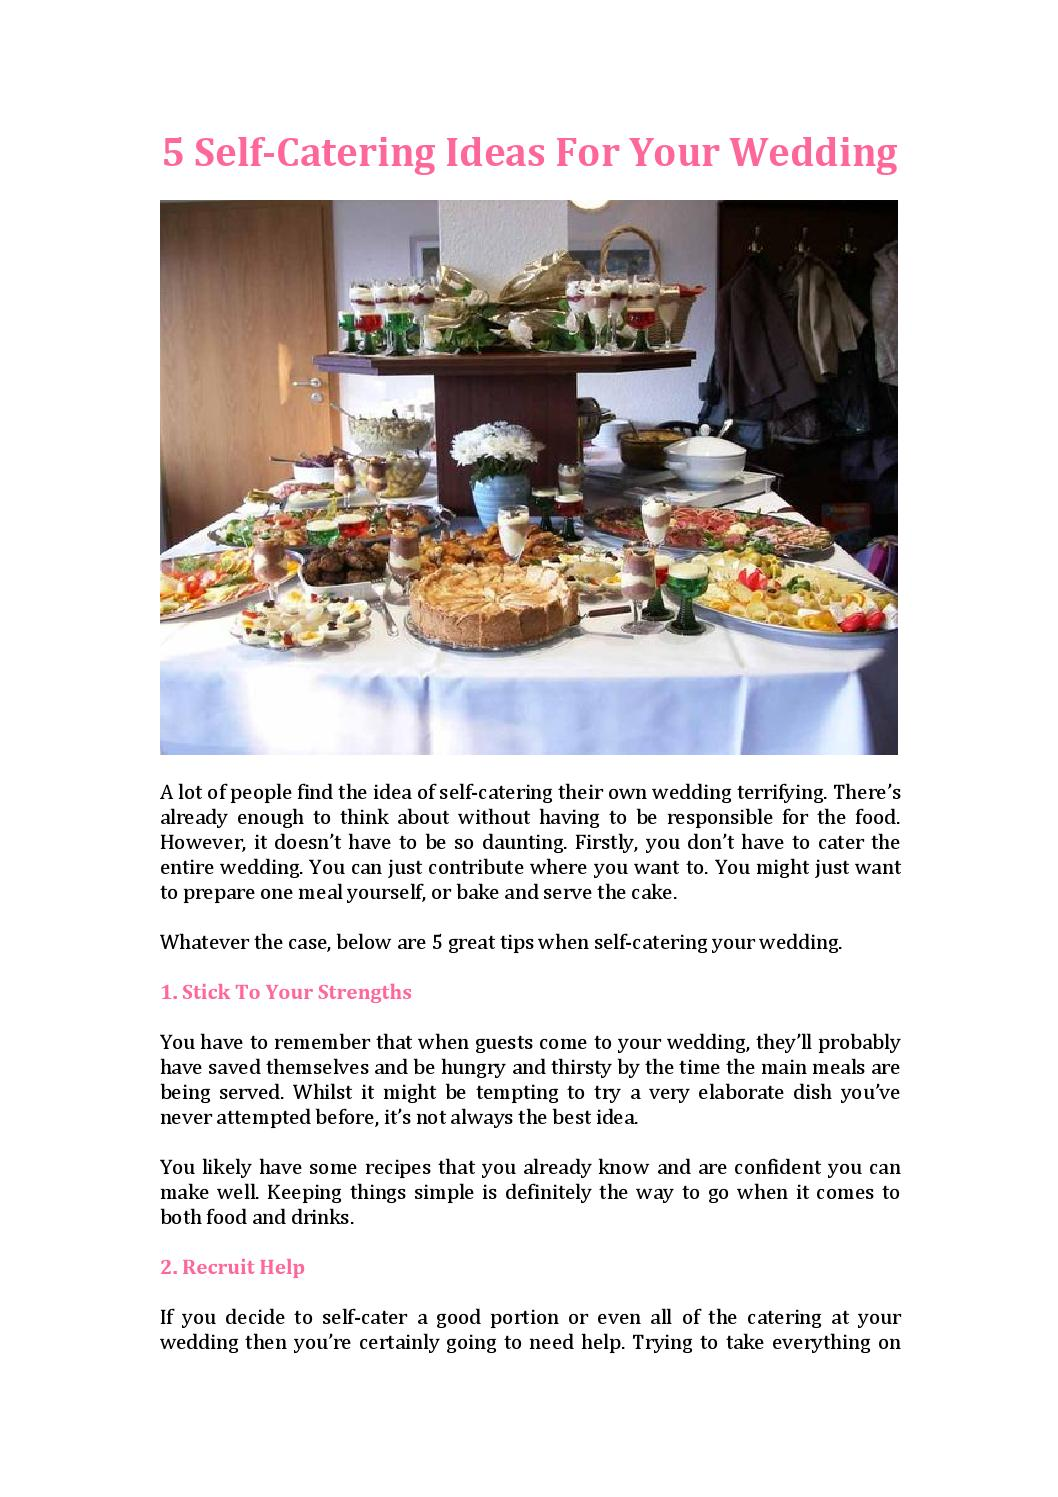 5 self catering ideas for your weddingself catering ideas by 5 self catering ideas for your weddingself catering ideas by summermartin issuu solutioingenieria Choice Image